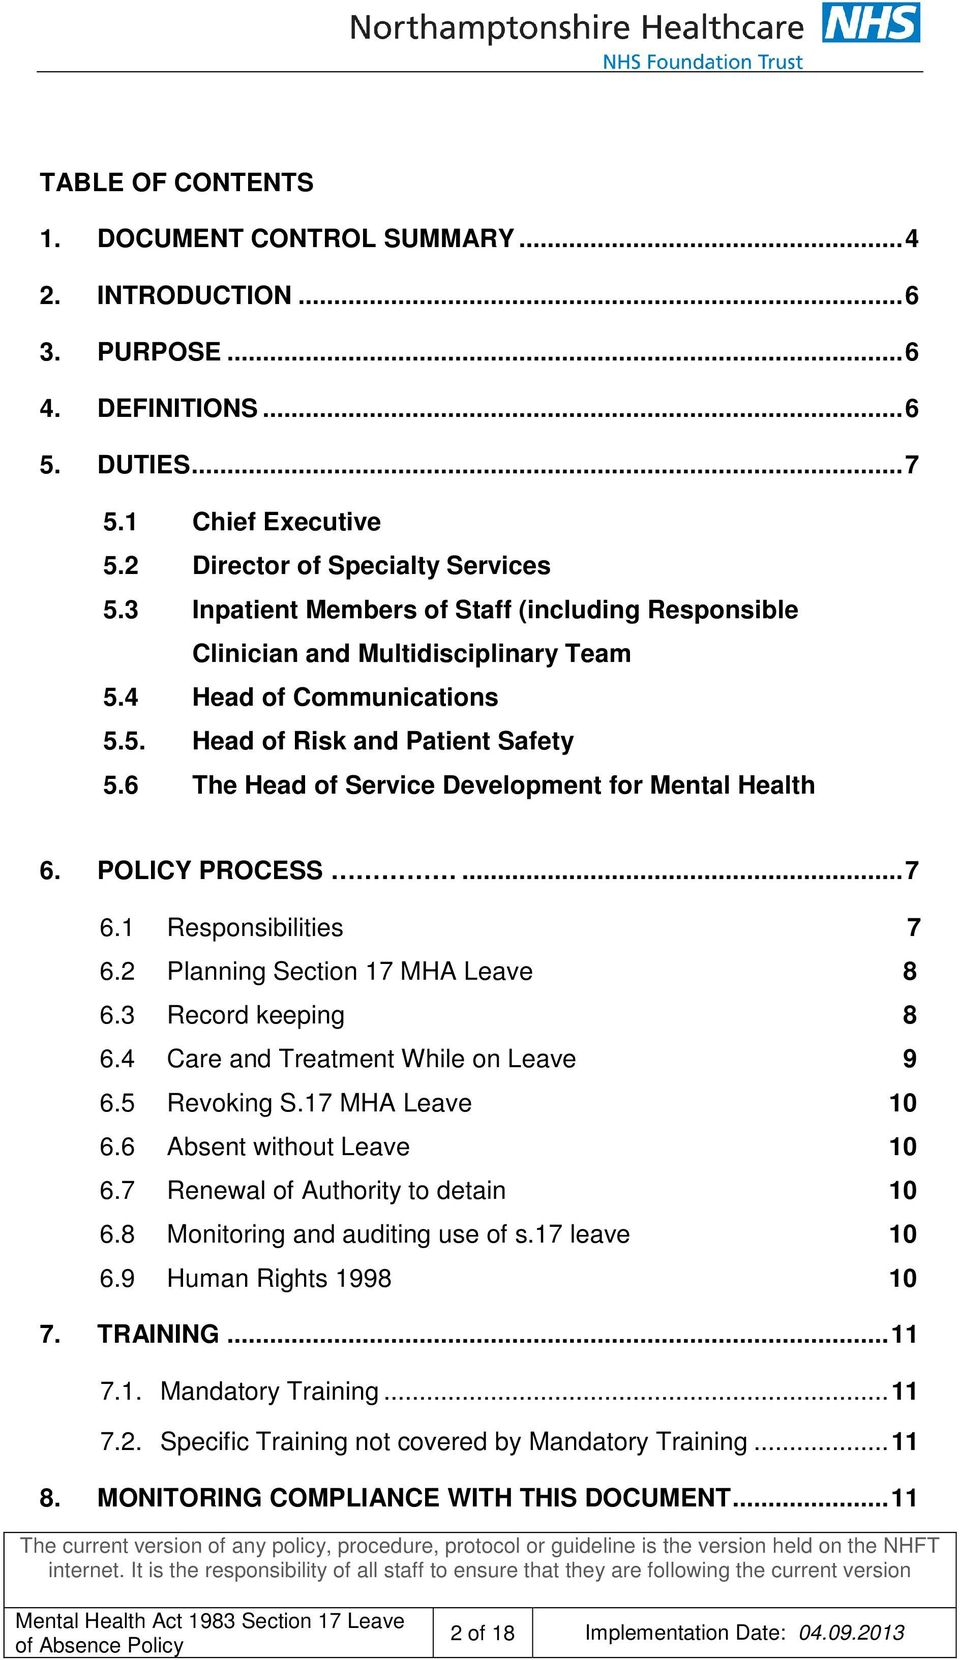 6 The Head of Service Development for Mental Health 6. POLICY PROCESS... 7 6.1 Responsibilities 7 6.2 Planning Section 17 MHA Leave 8 6.3 Record keeping 8 6.4 Care and Treatment While on Leave 9 6.